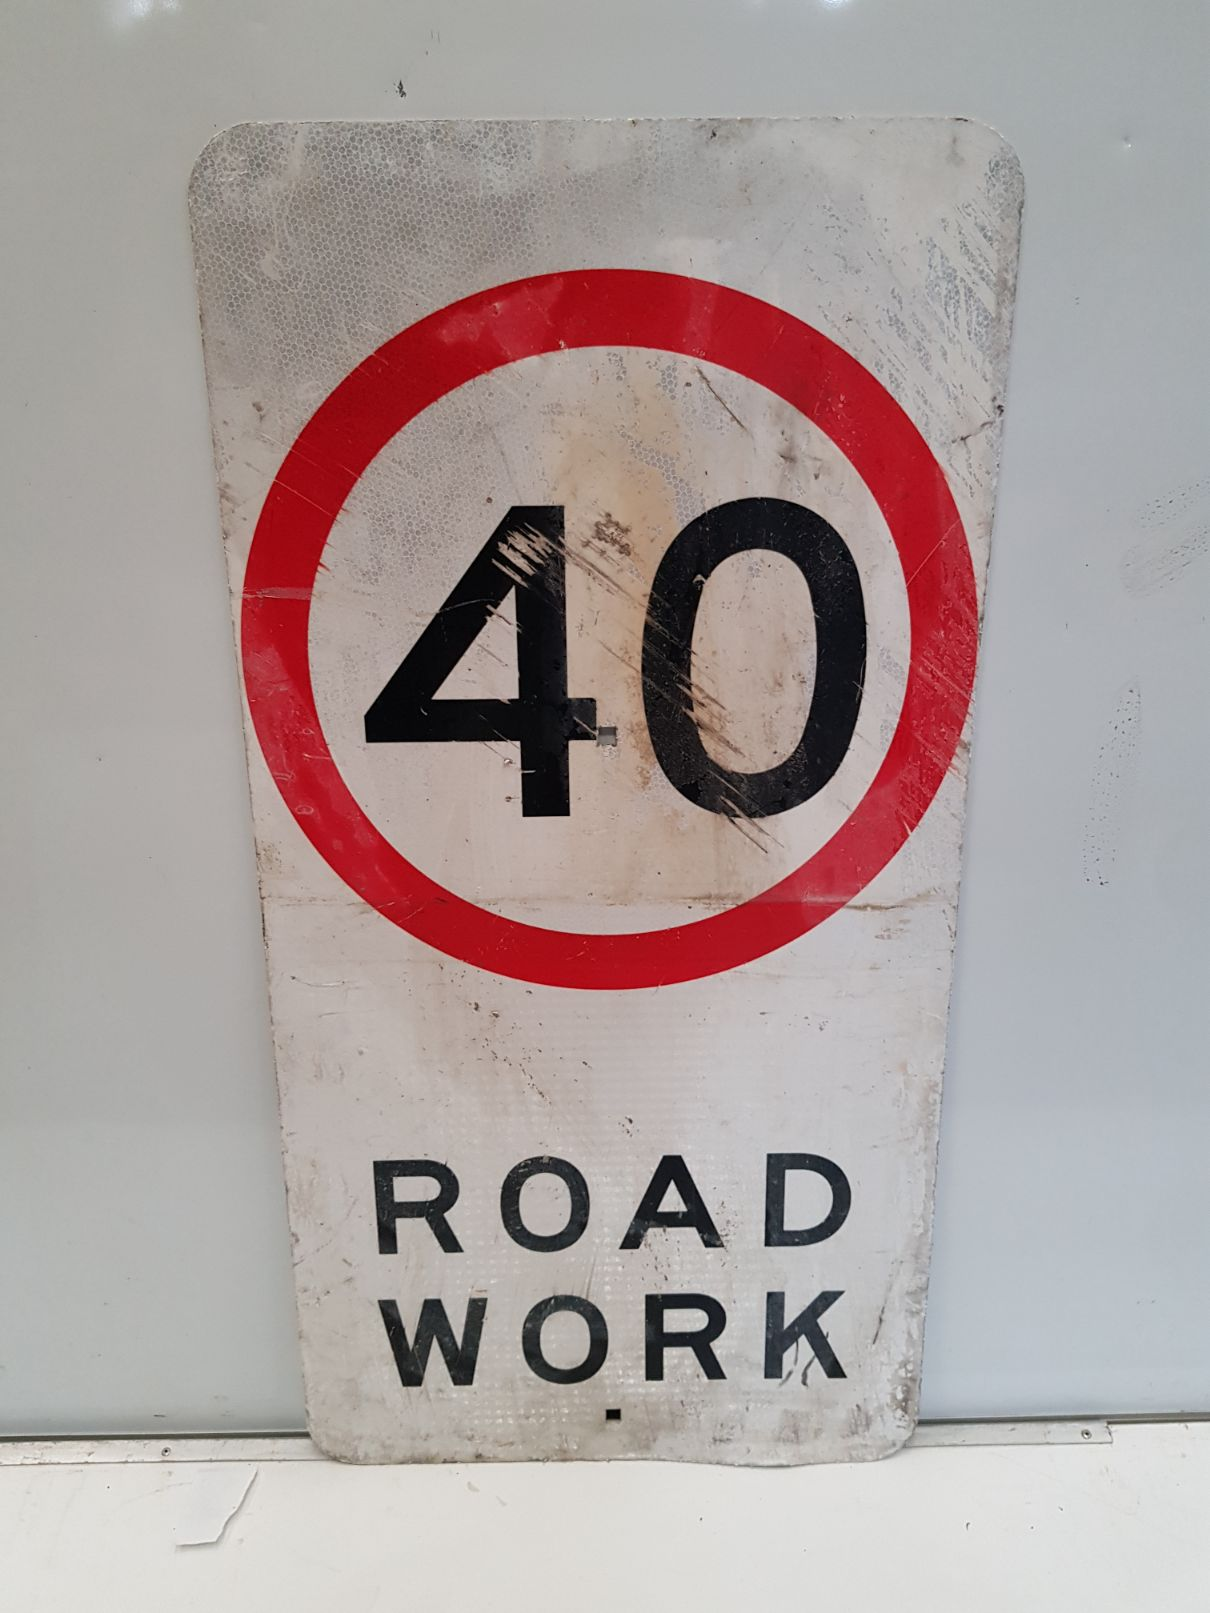 Roadwork 40 Speed Sign.jpg